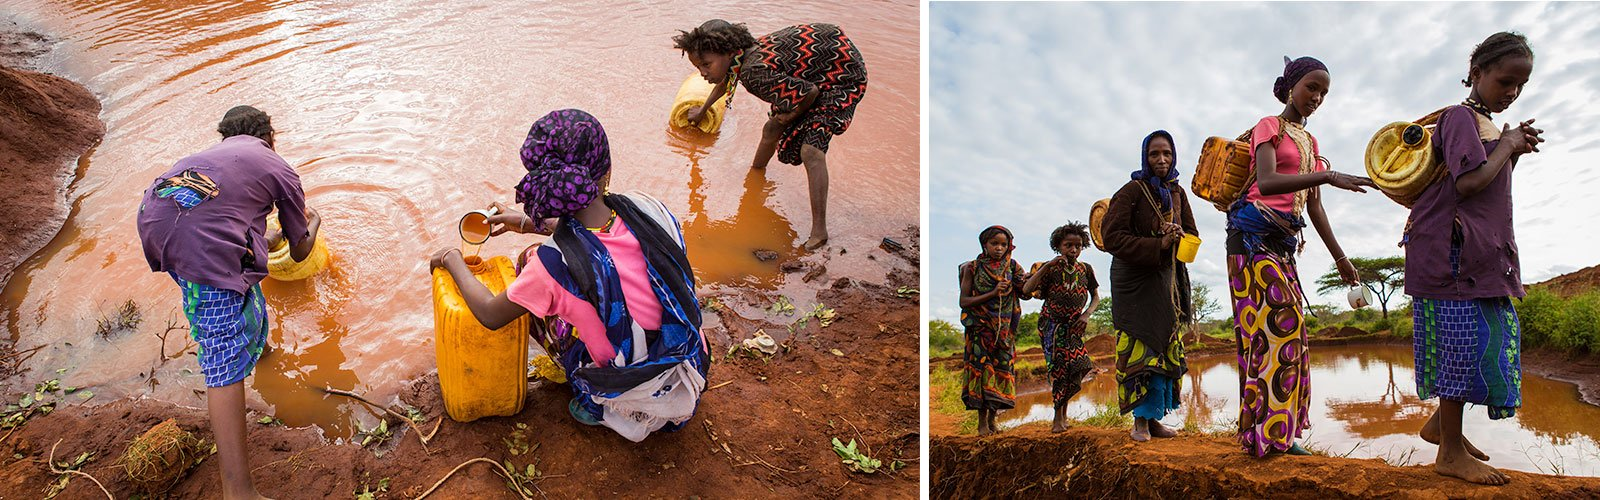 In Gayo village, Ethiopia, a group of women and young girls collect water from a rain water pool. They use tablets to purify the water before they drink it. When there is water scarcity or a water shortage, mostly women and children bear the burden of collecting clean water for their families.